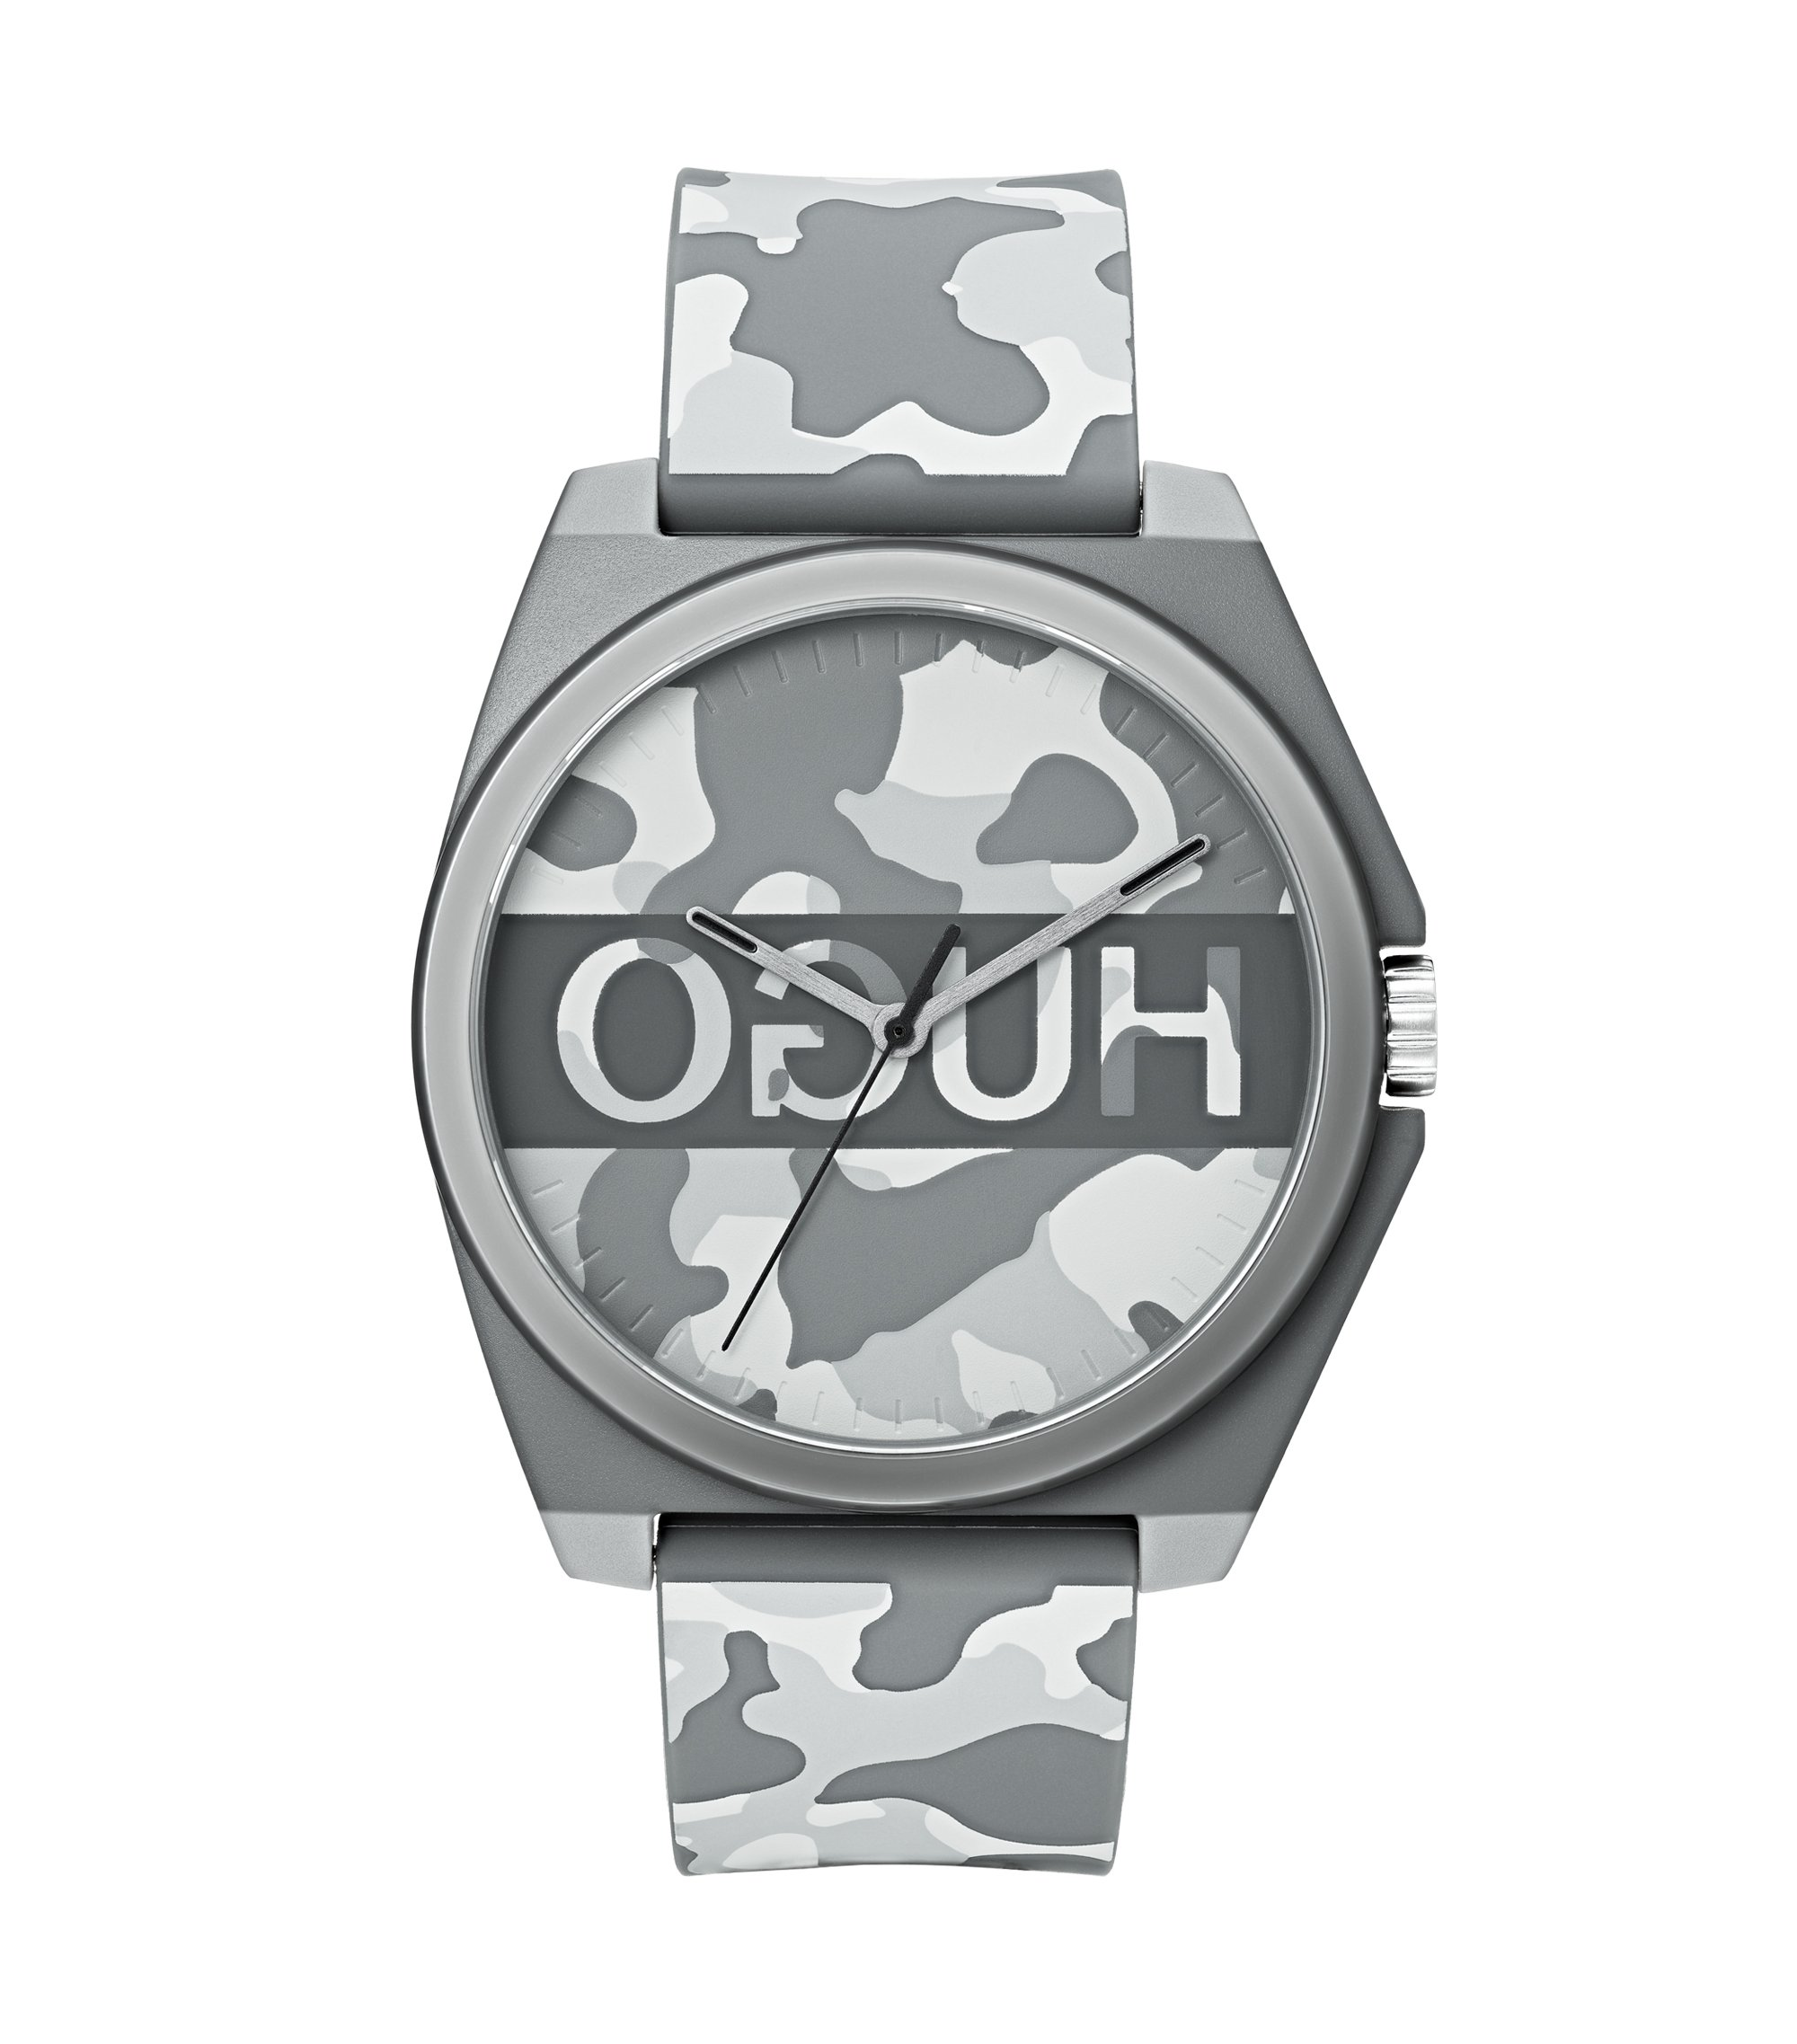 Unisex camouflage-print watch with reverse logo, Patterned